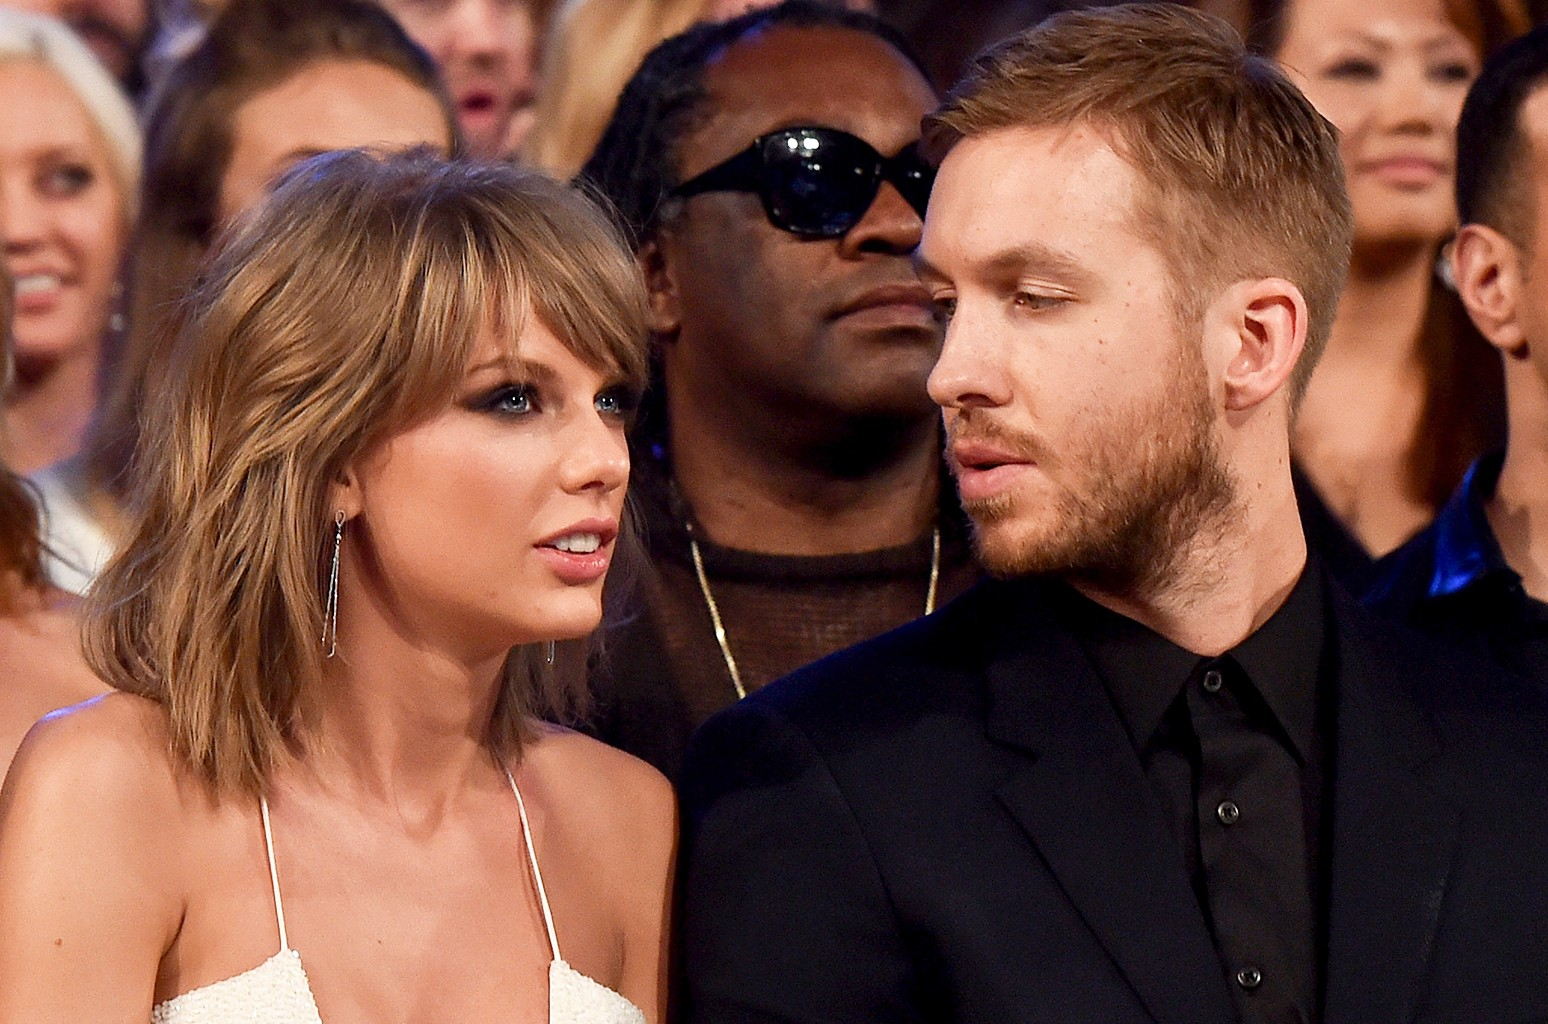 Taylor Swift and Calvin Harris attend the 2015 Billboard Music Awards